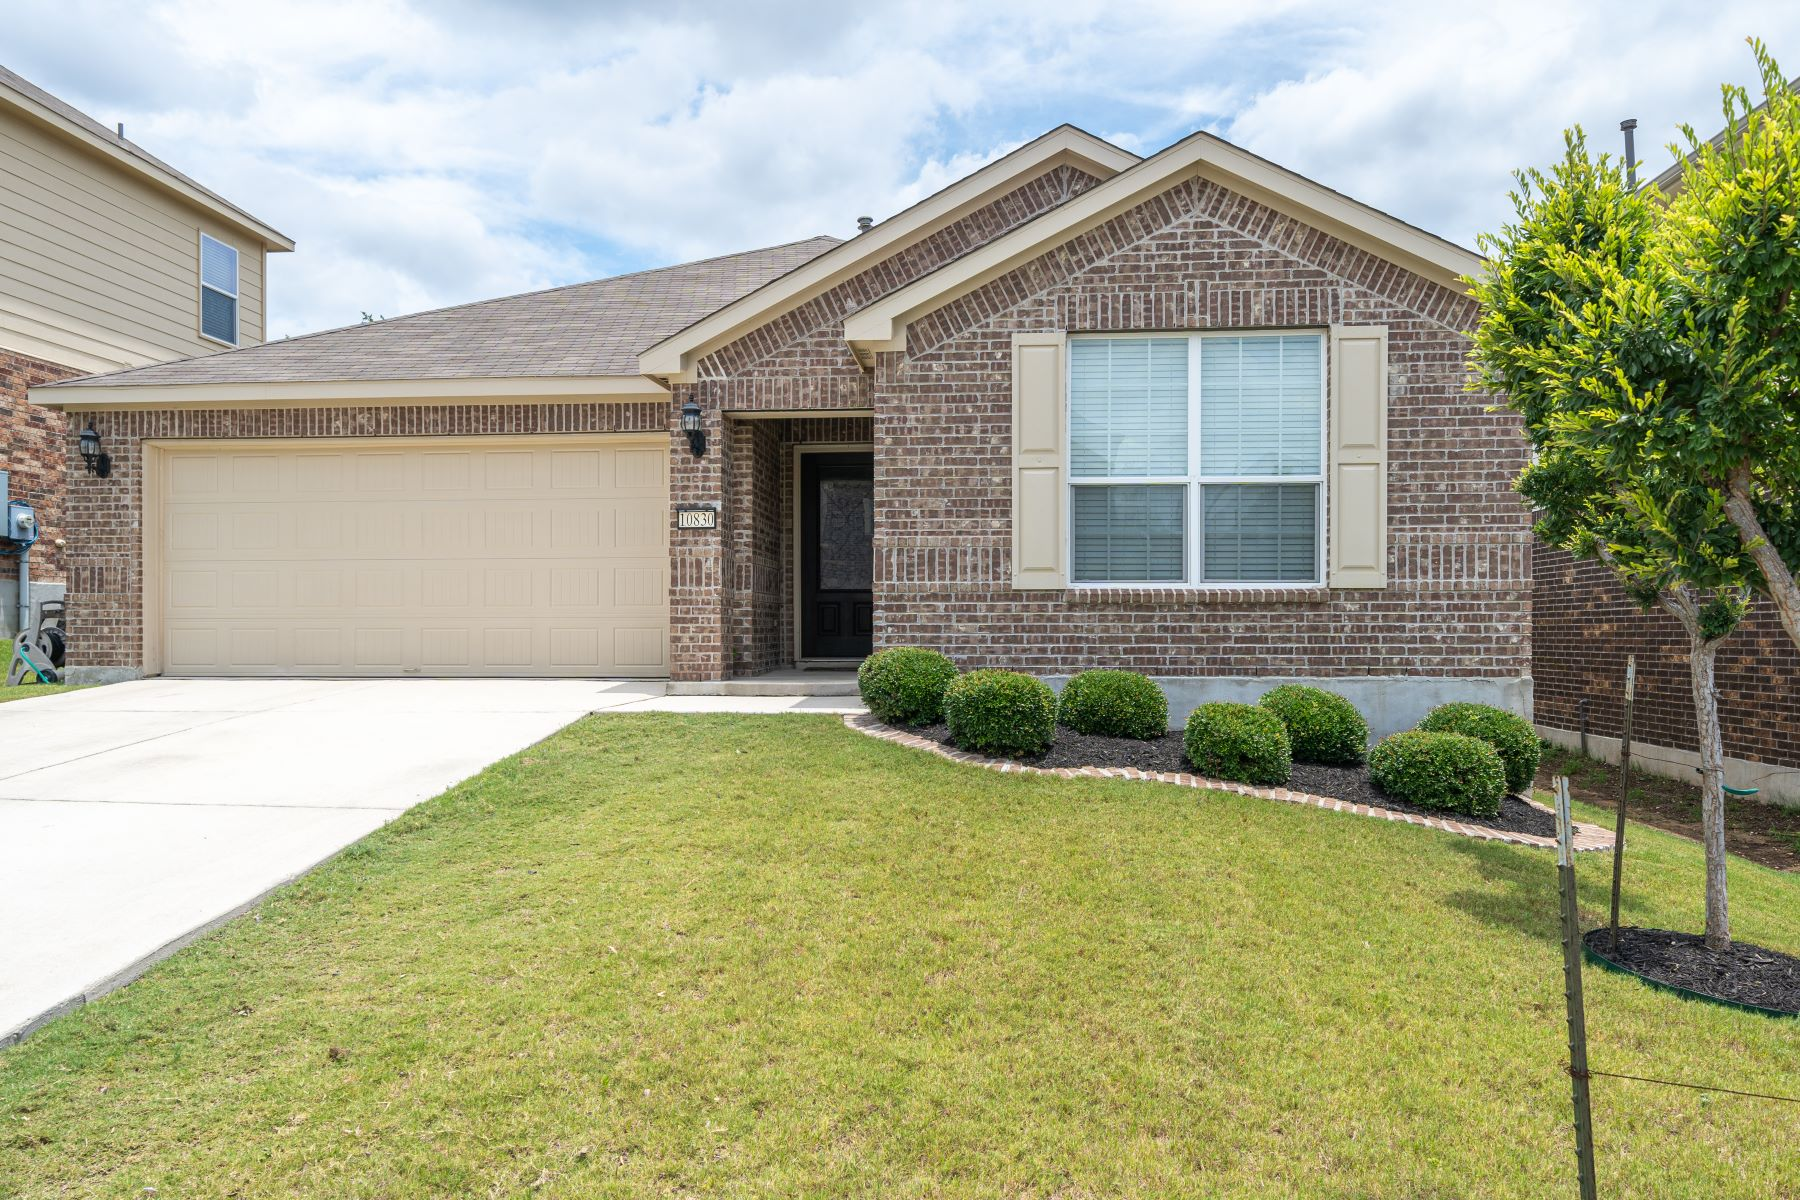 Single Family Homes for Active at Charming Single Story in Helotes 10830 Red Sage Helotes, Texas 78023 United States